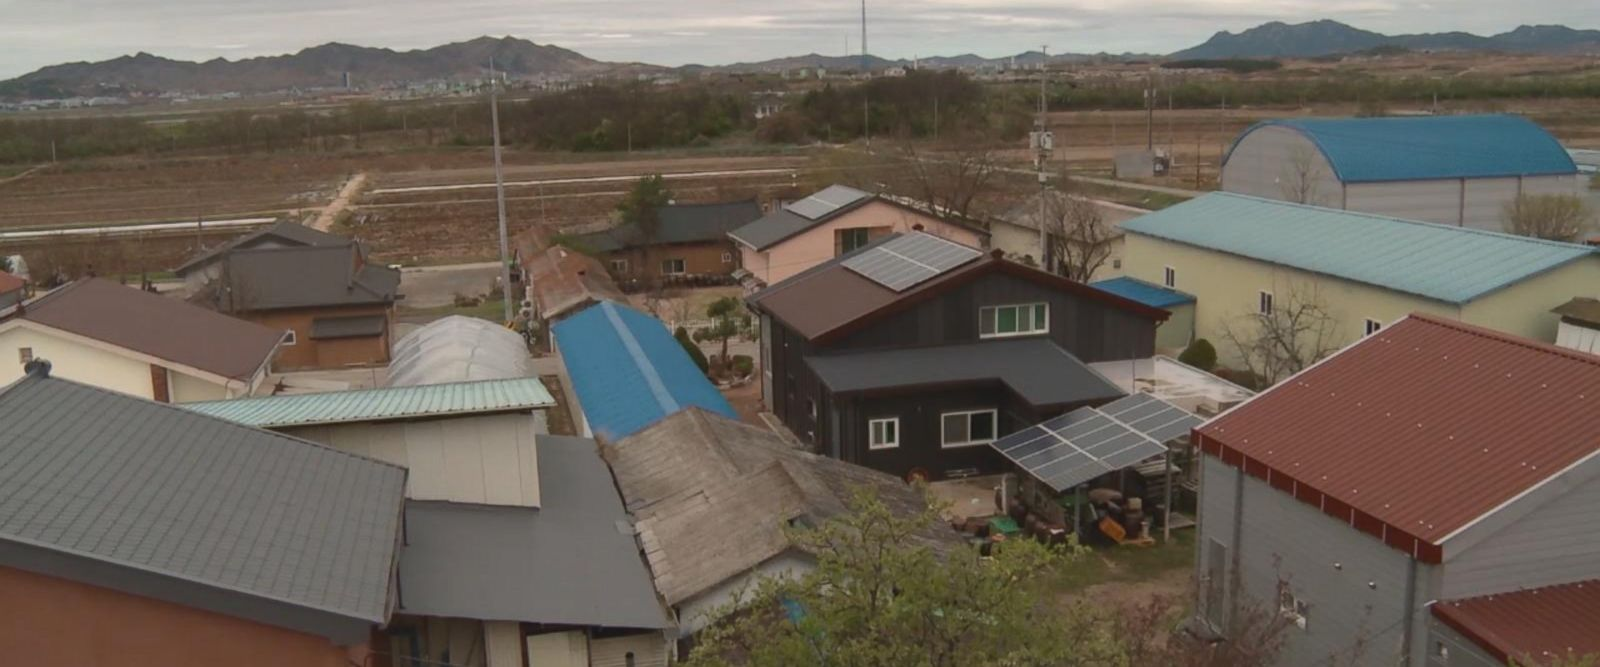 Tae Sung Dong, or Taesung Freedom Village, located in the Korean demilitarized zone, is home to 193 people.